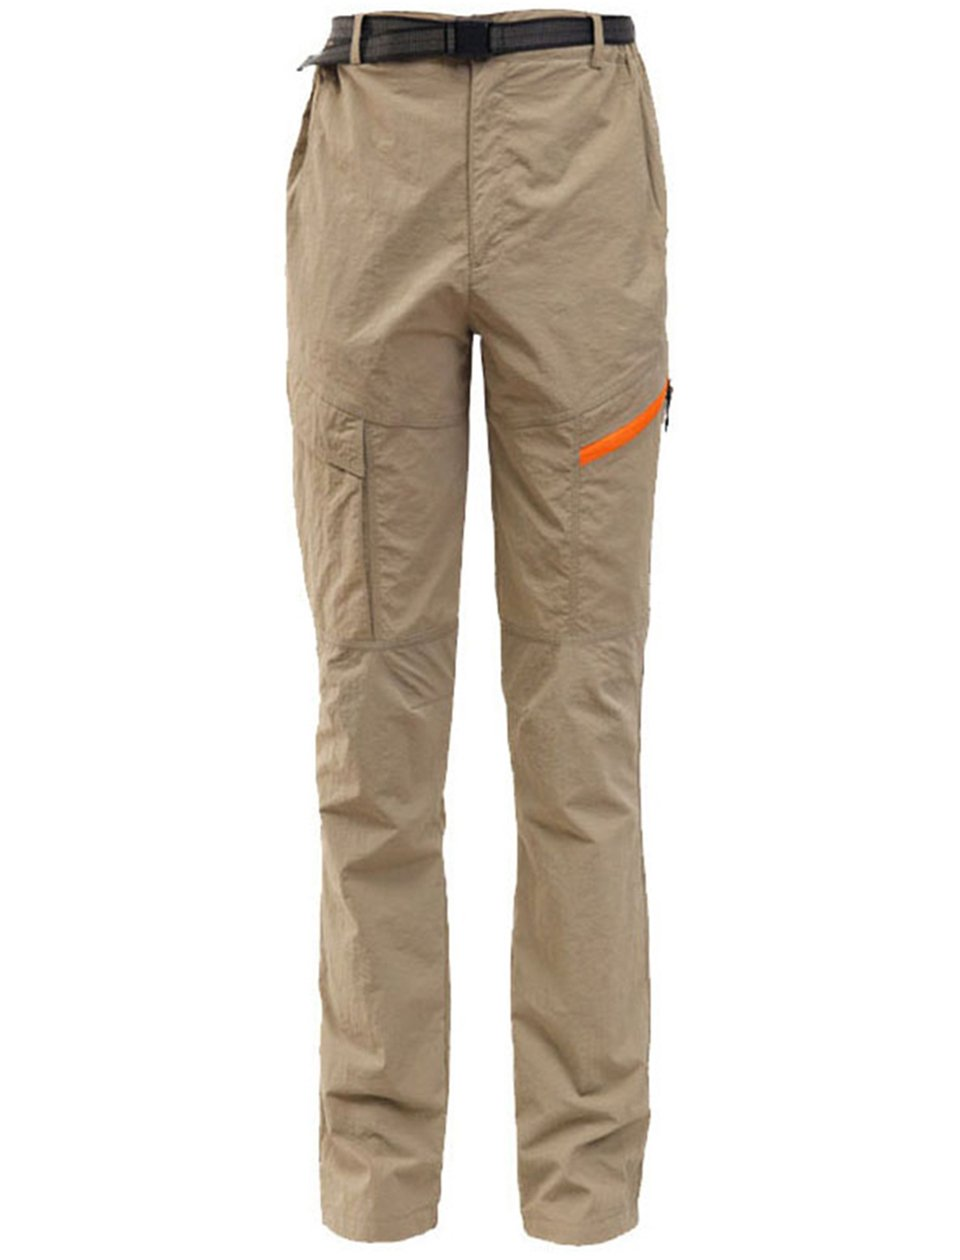 a57d498df61 Lakaka Fast Dry Pants Men Outdoor Waterproof Breathable Quick Drying  Anti-UV Thin Trousers Sportswear Hiking  Amazon.co.uk  Sports   Outdoors